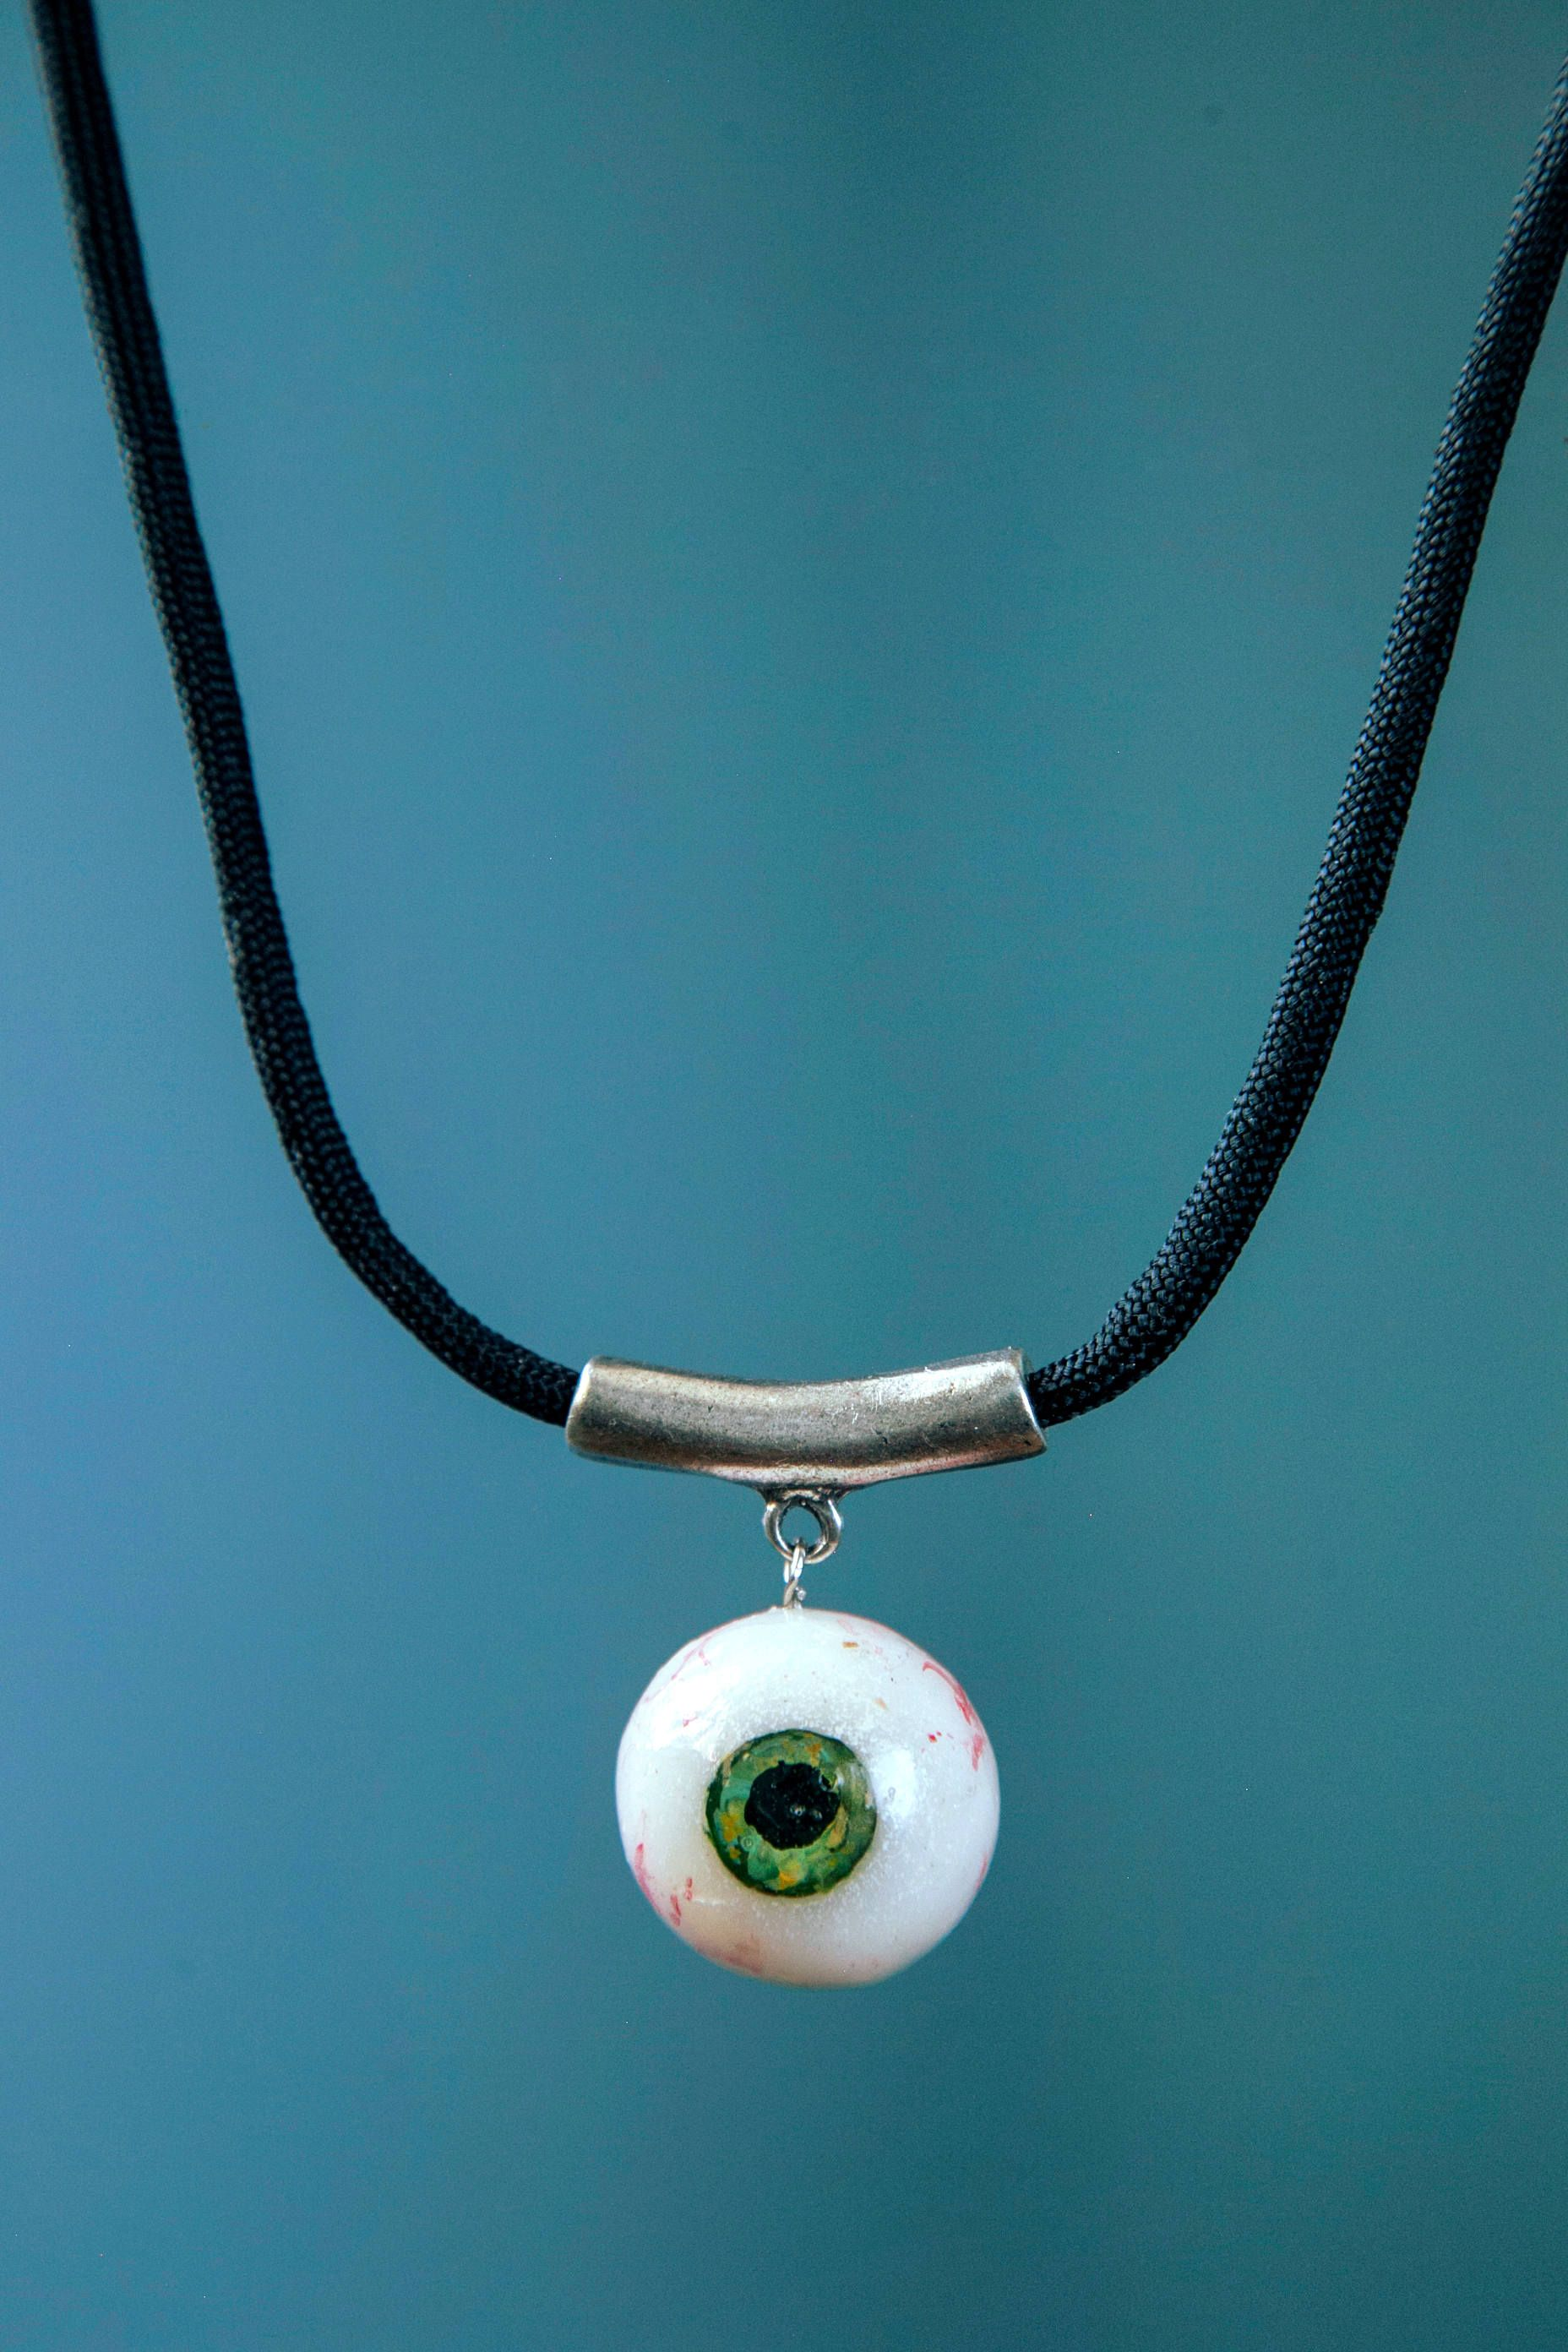 Creepy realistic eyeball necklace macabre jewelry evil eye pendant creepy realistic eyeball necklace macabre jewelry evil eye pendant weird stuff horror jewelry eye necklace third eye pendant evil oddity aloadofball Choice Image